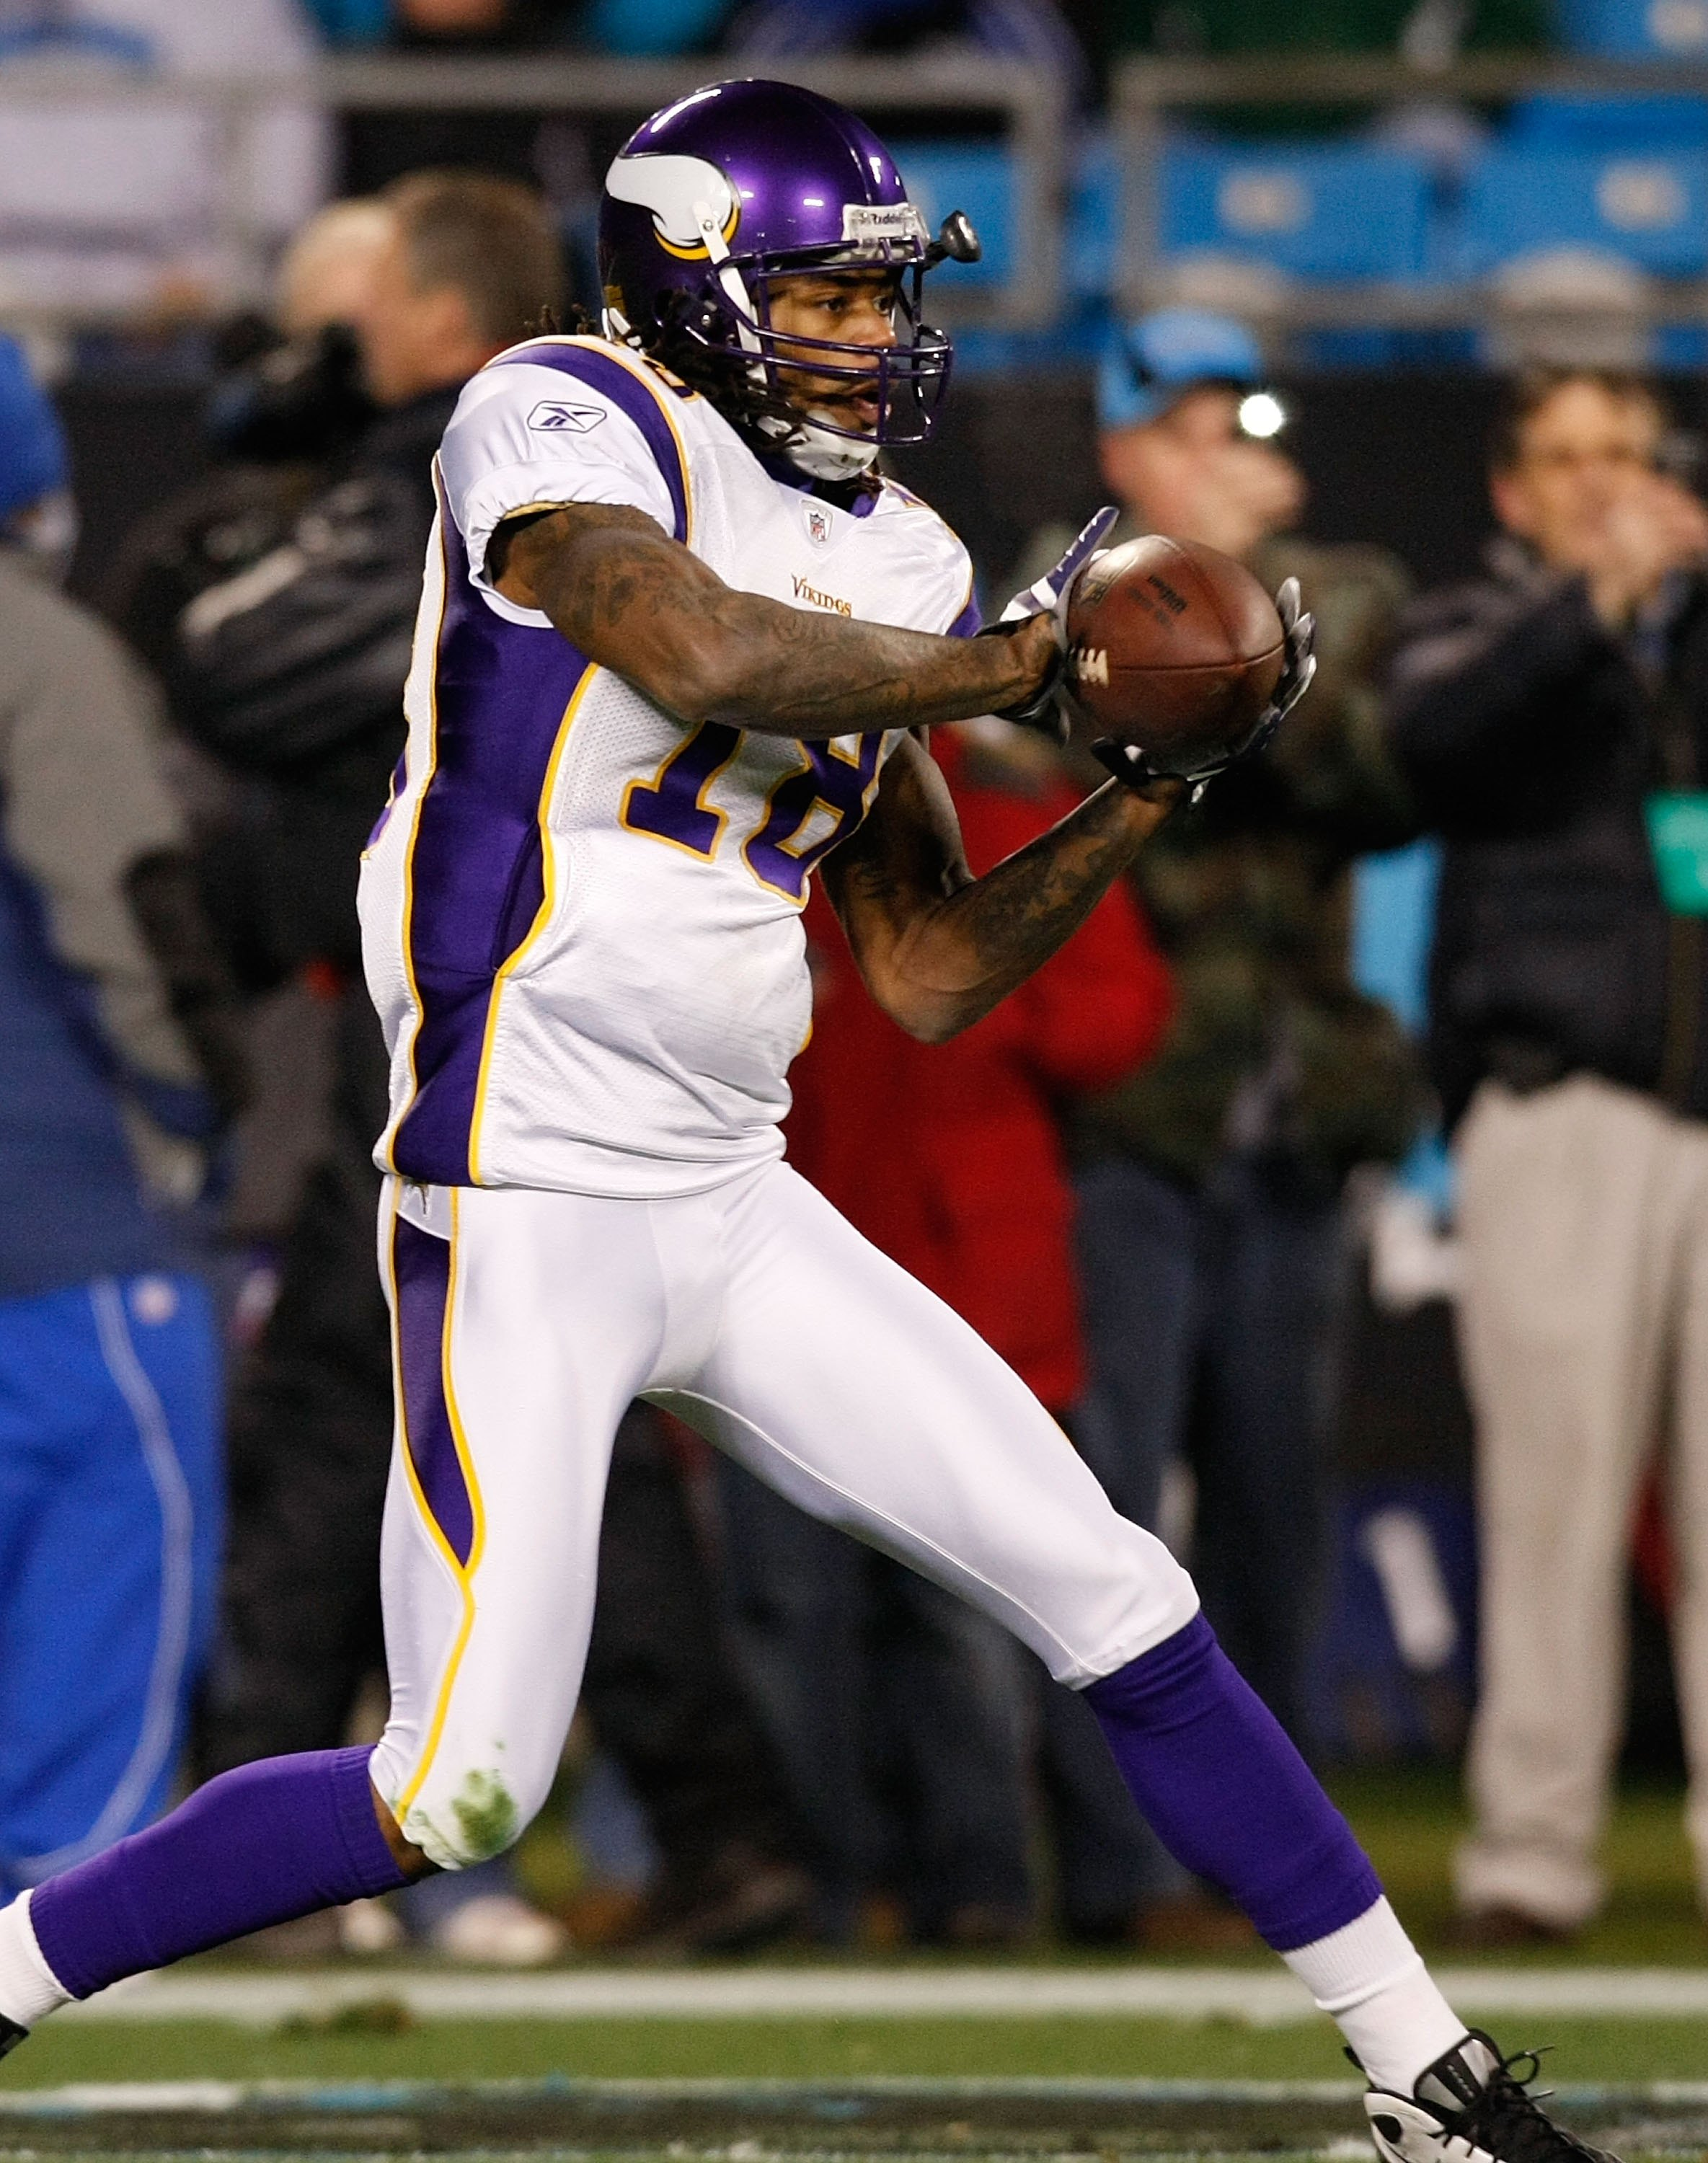 Football Outsiders rated Sidney Rice of the Vikings the best receiver in 2009. The four-year player out of South Carolina is a free agent in 2011.